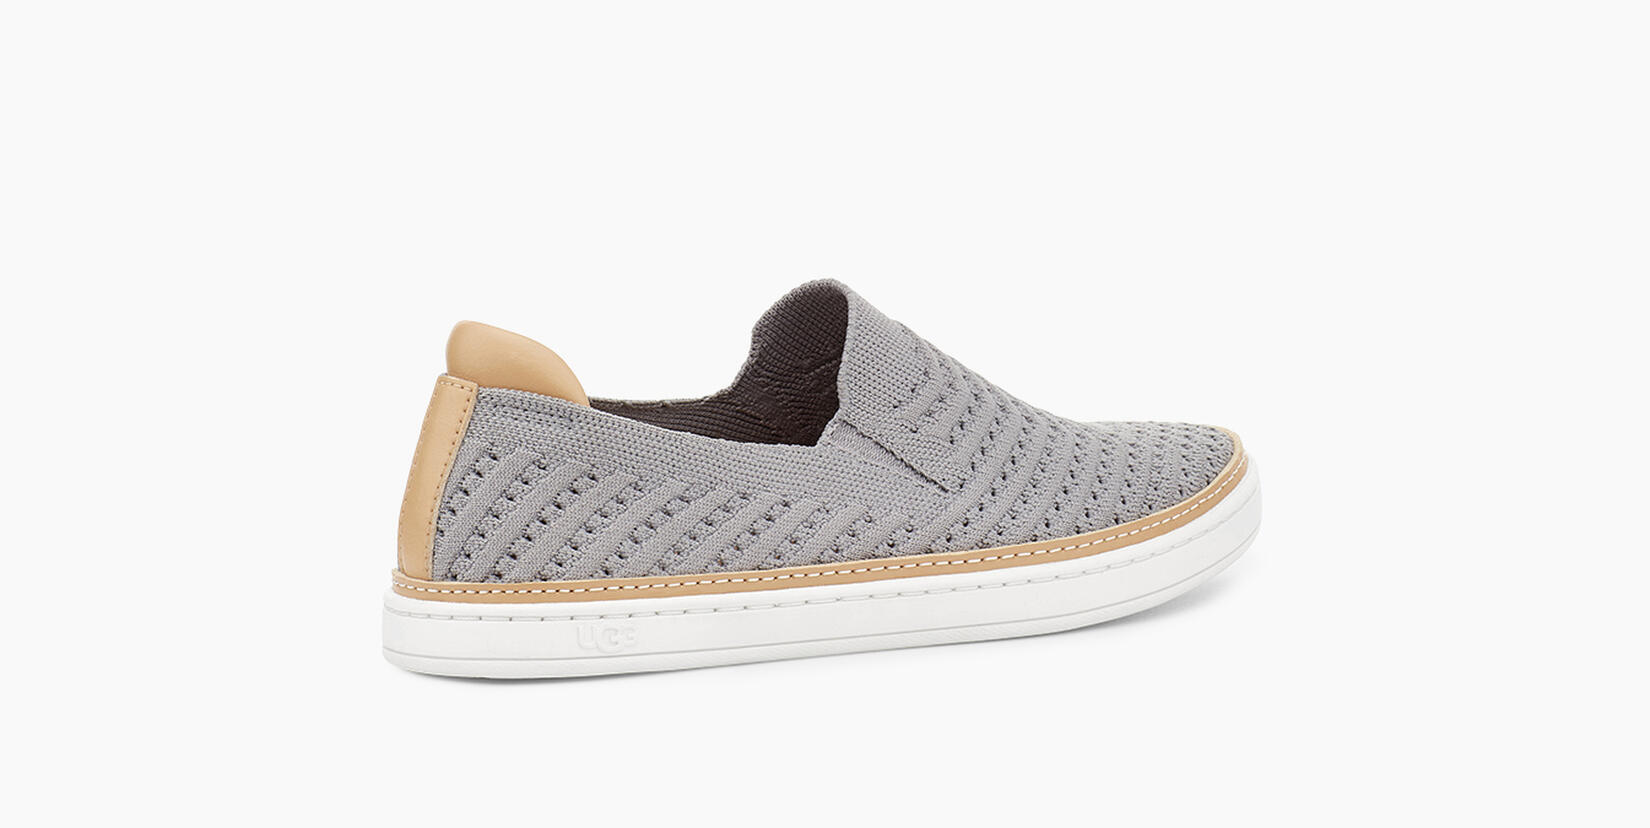 Sammy Chevron Slip On